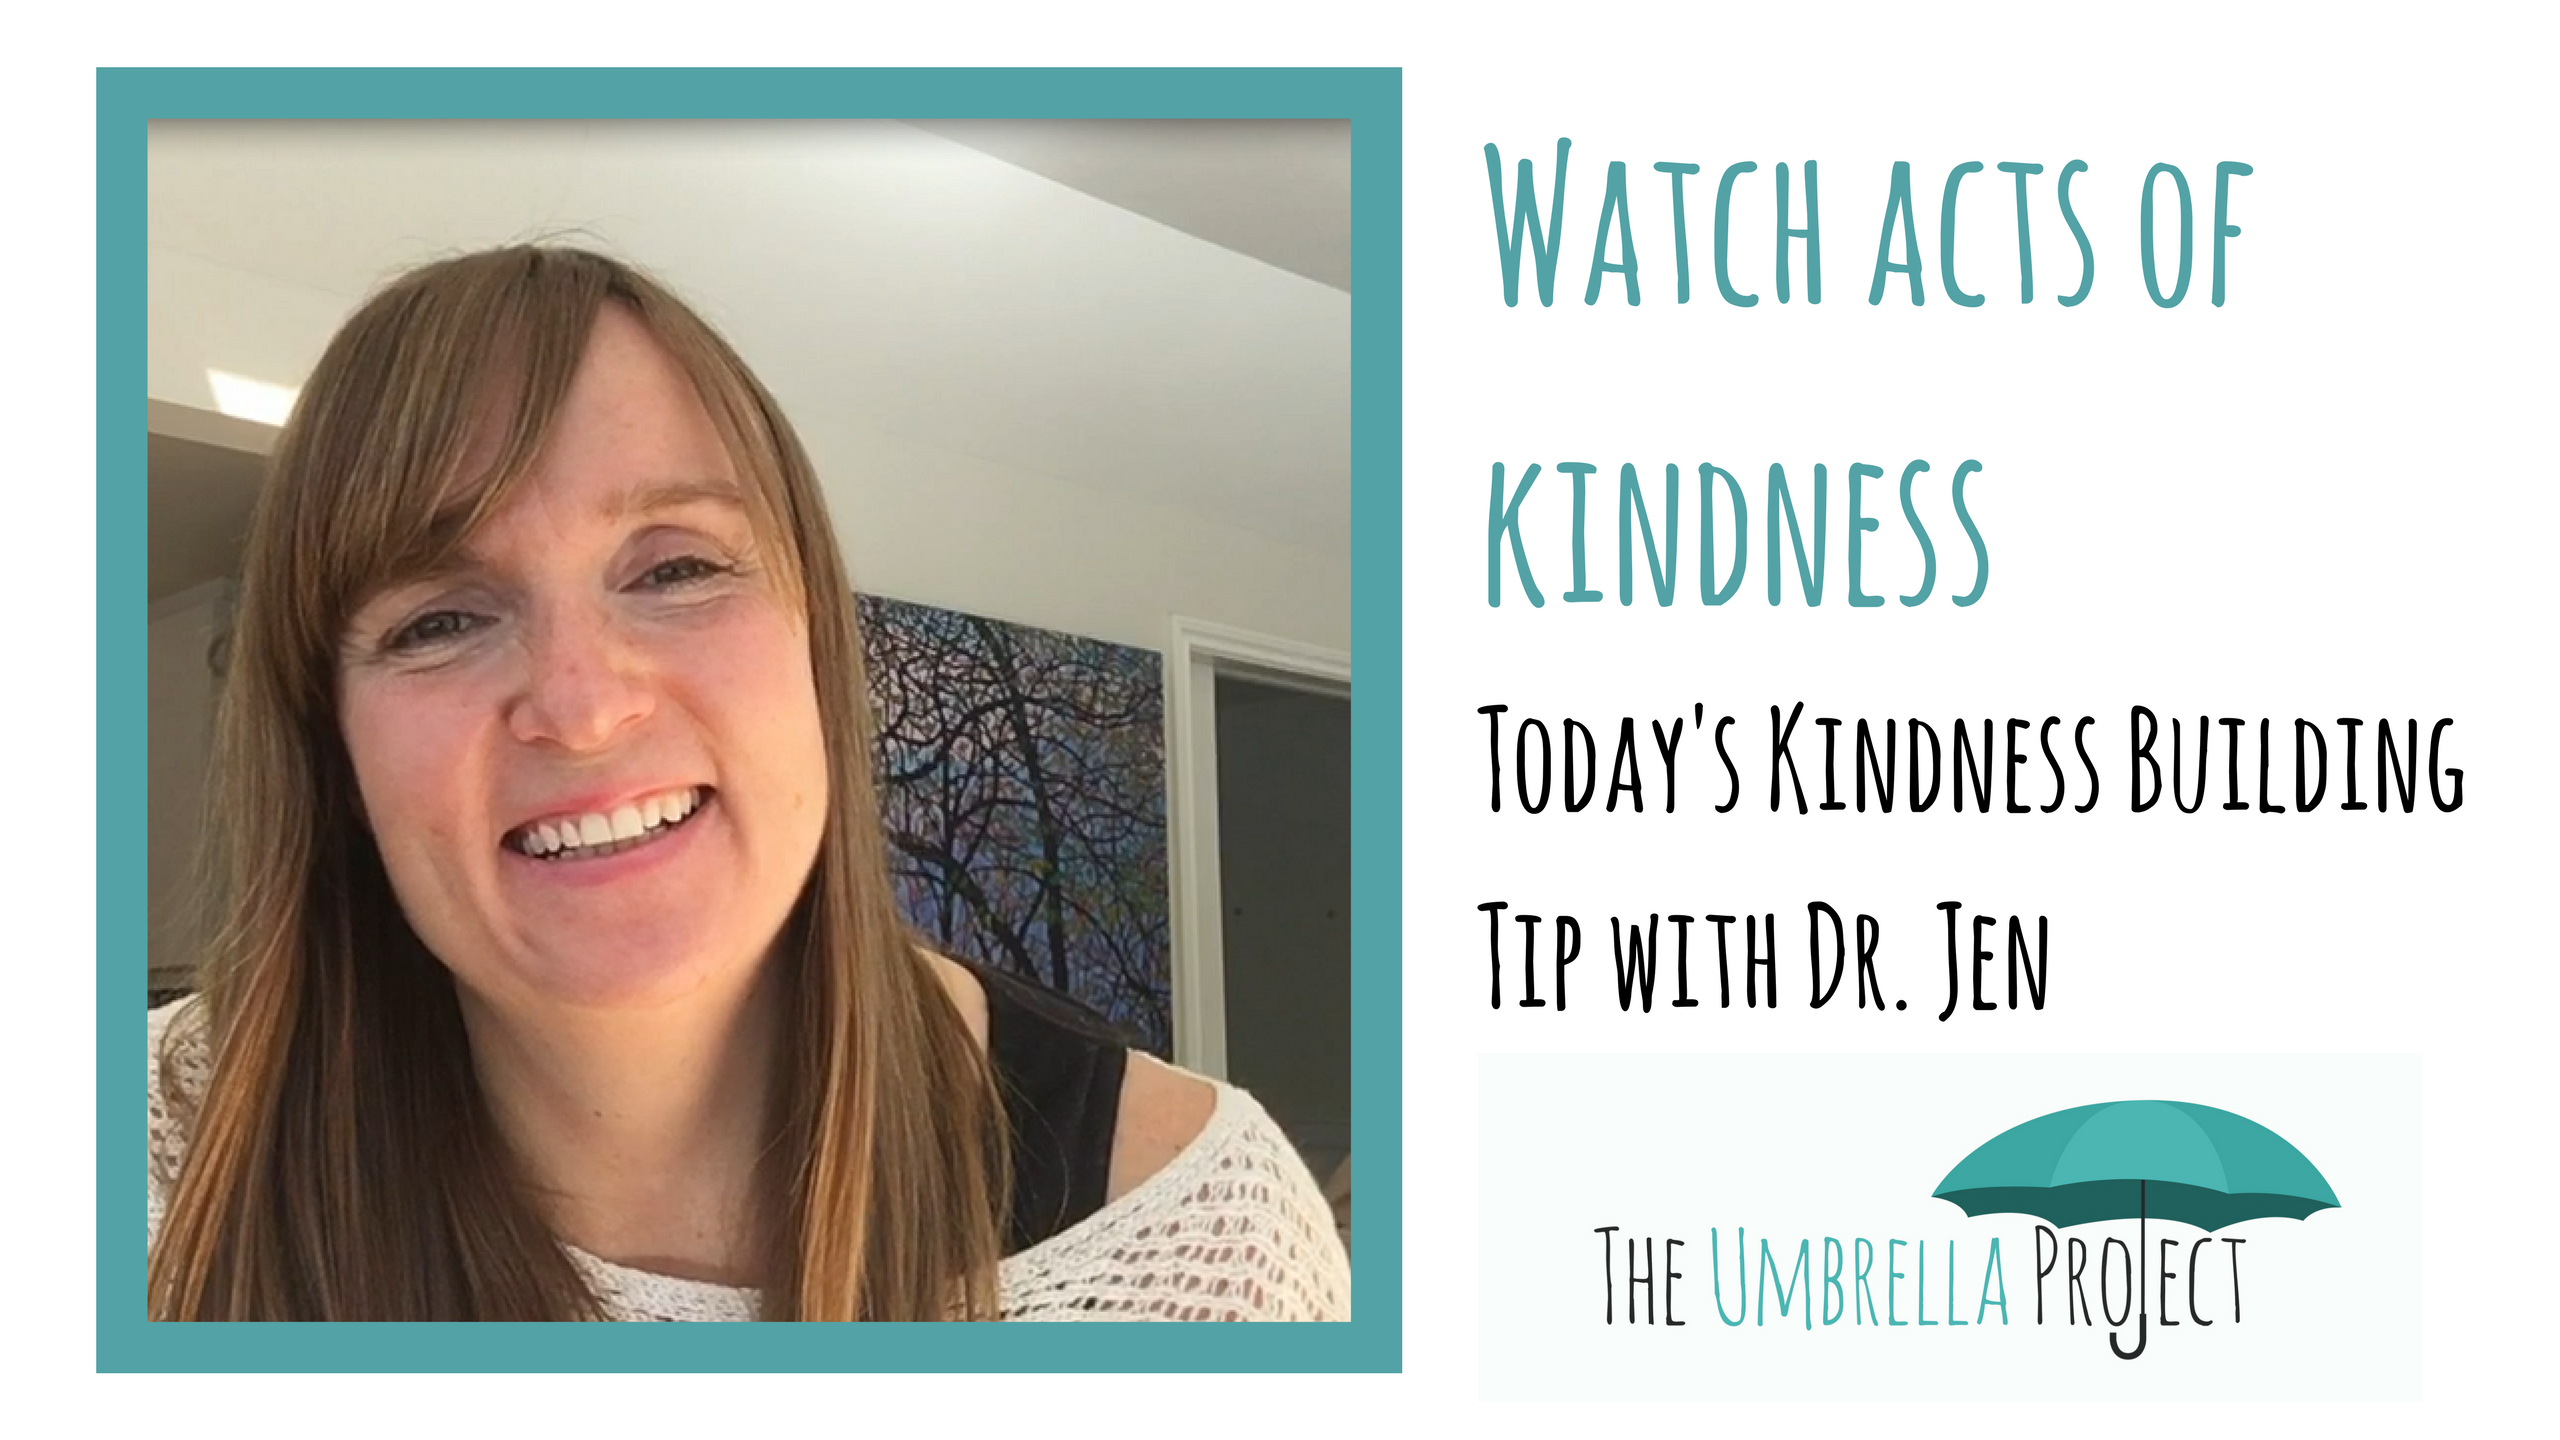 Watch Acts of Kindness: Today's Kindness Building Tip with Dr. Jen